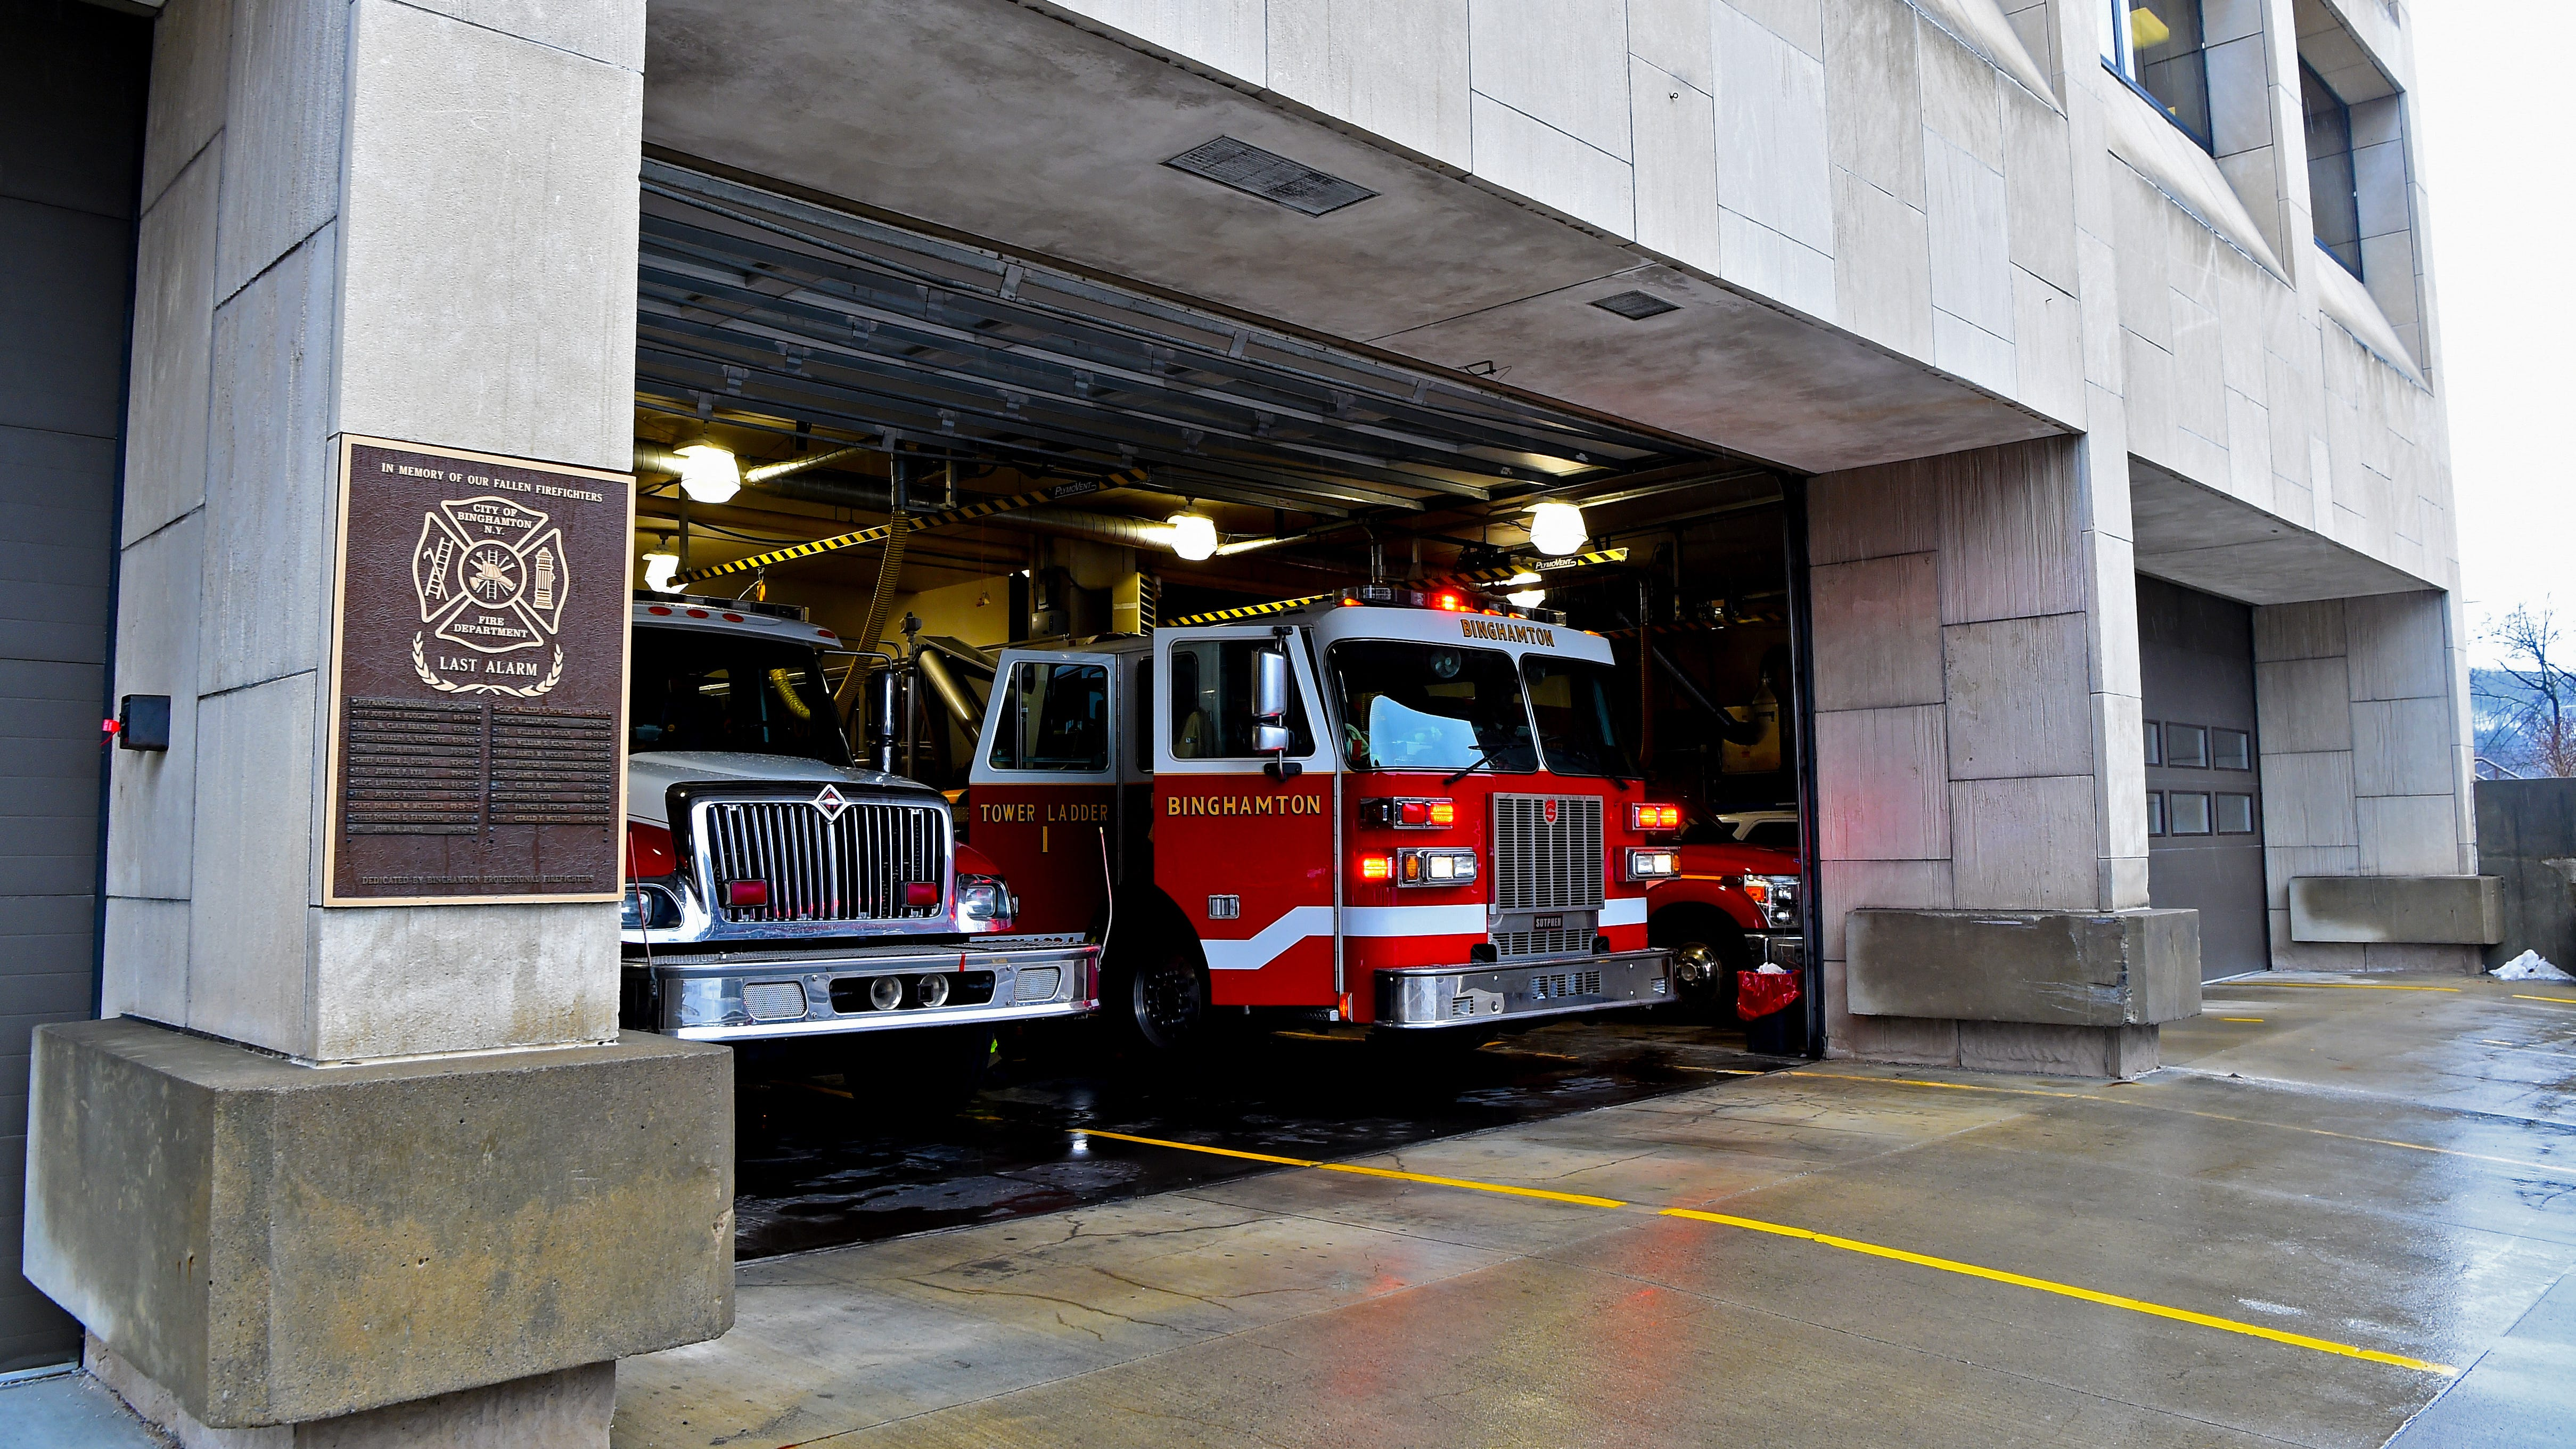 Money vs. safety: Why Binghamton could go from 5 fire stations to 4